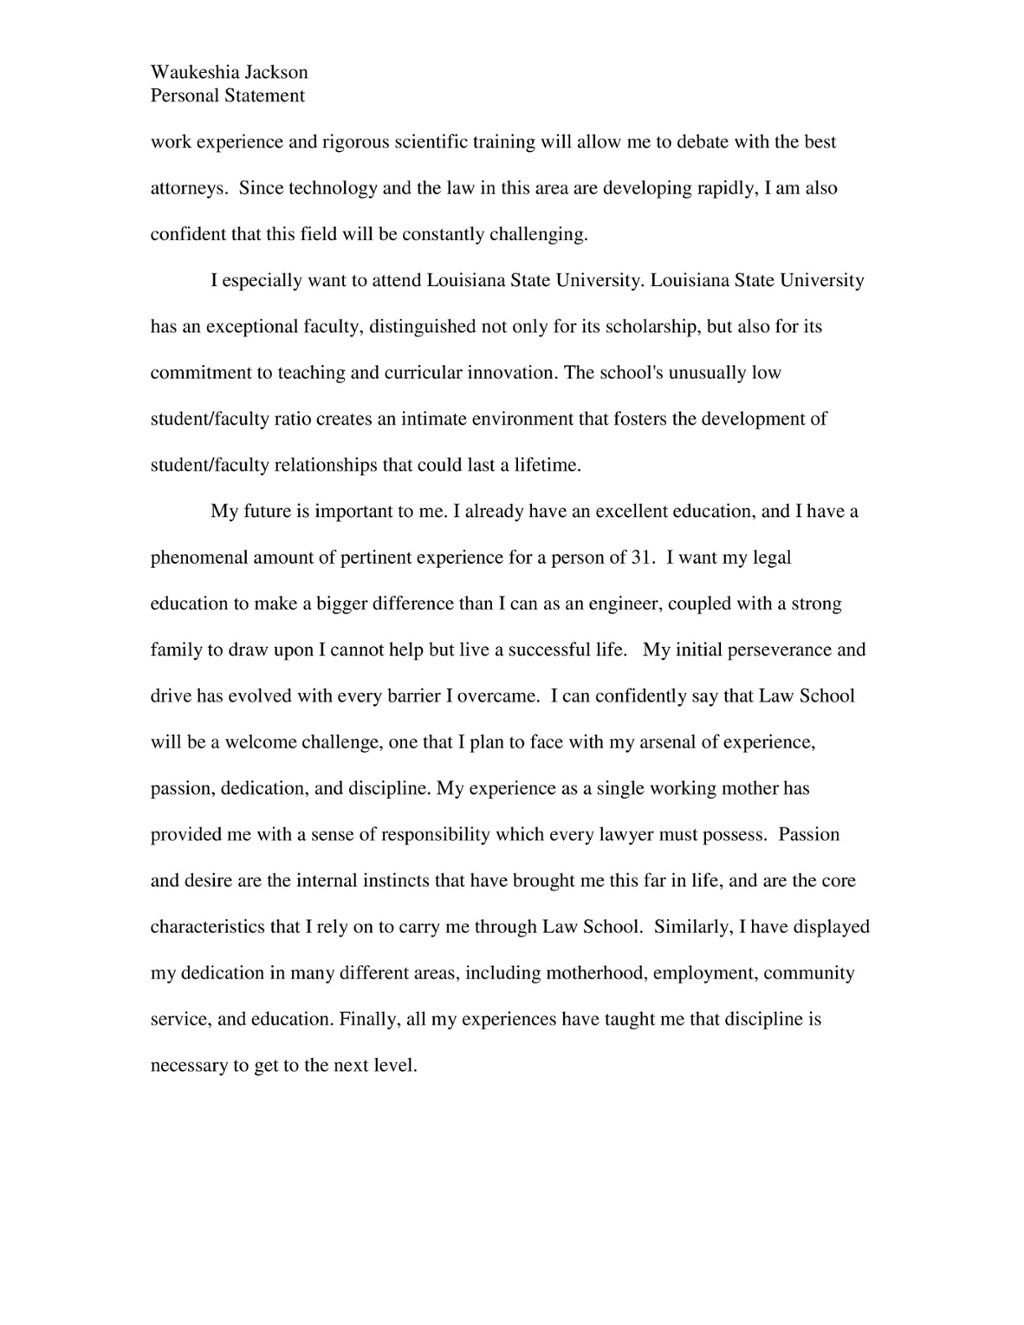 Law school admission personal essay